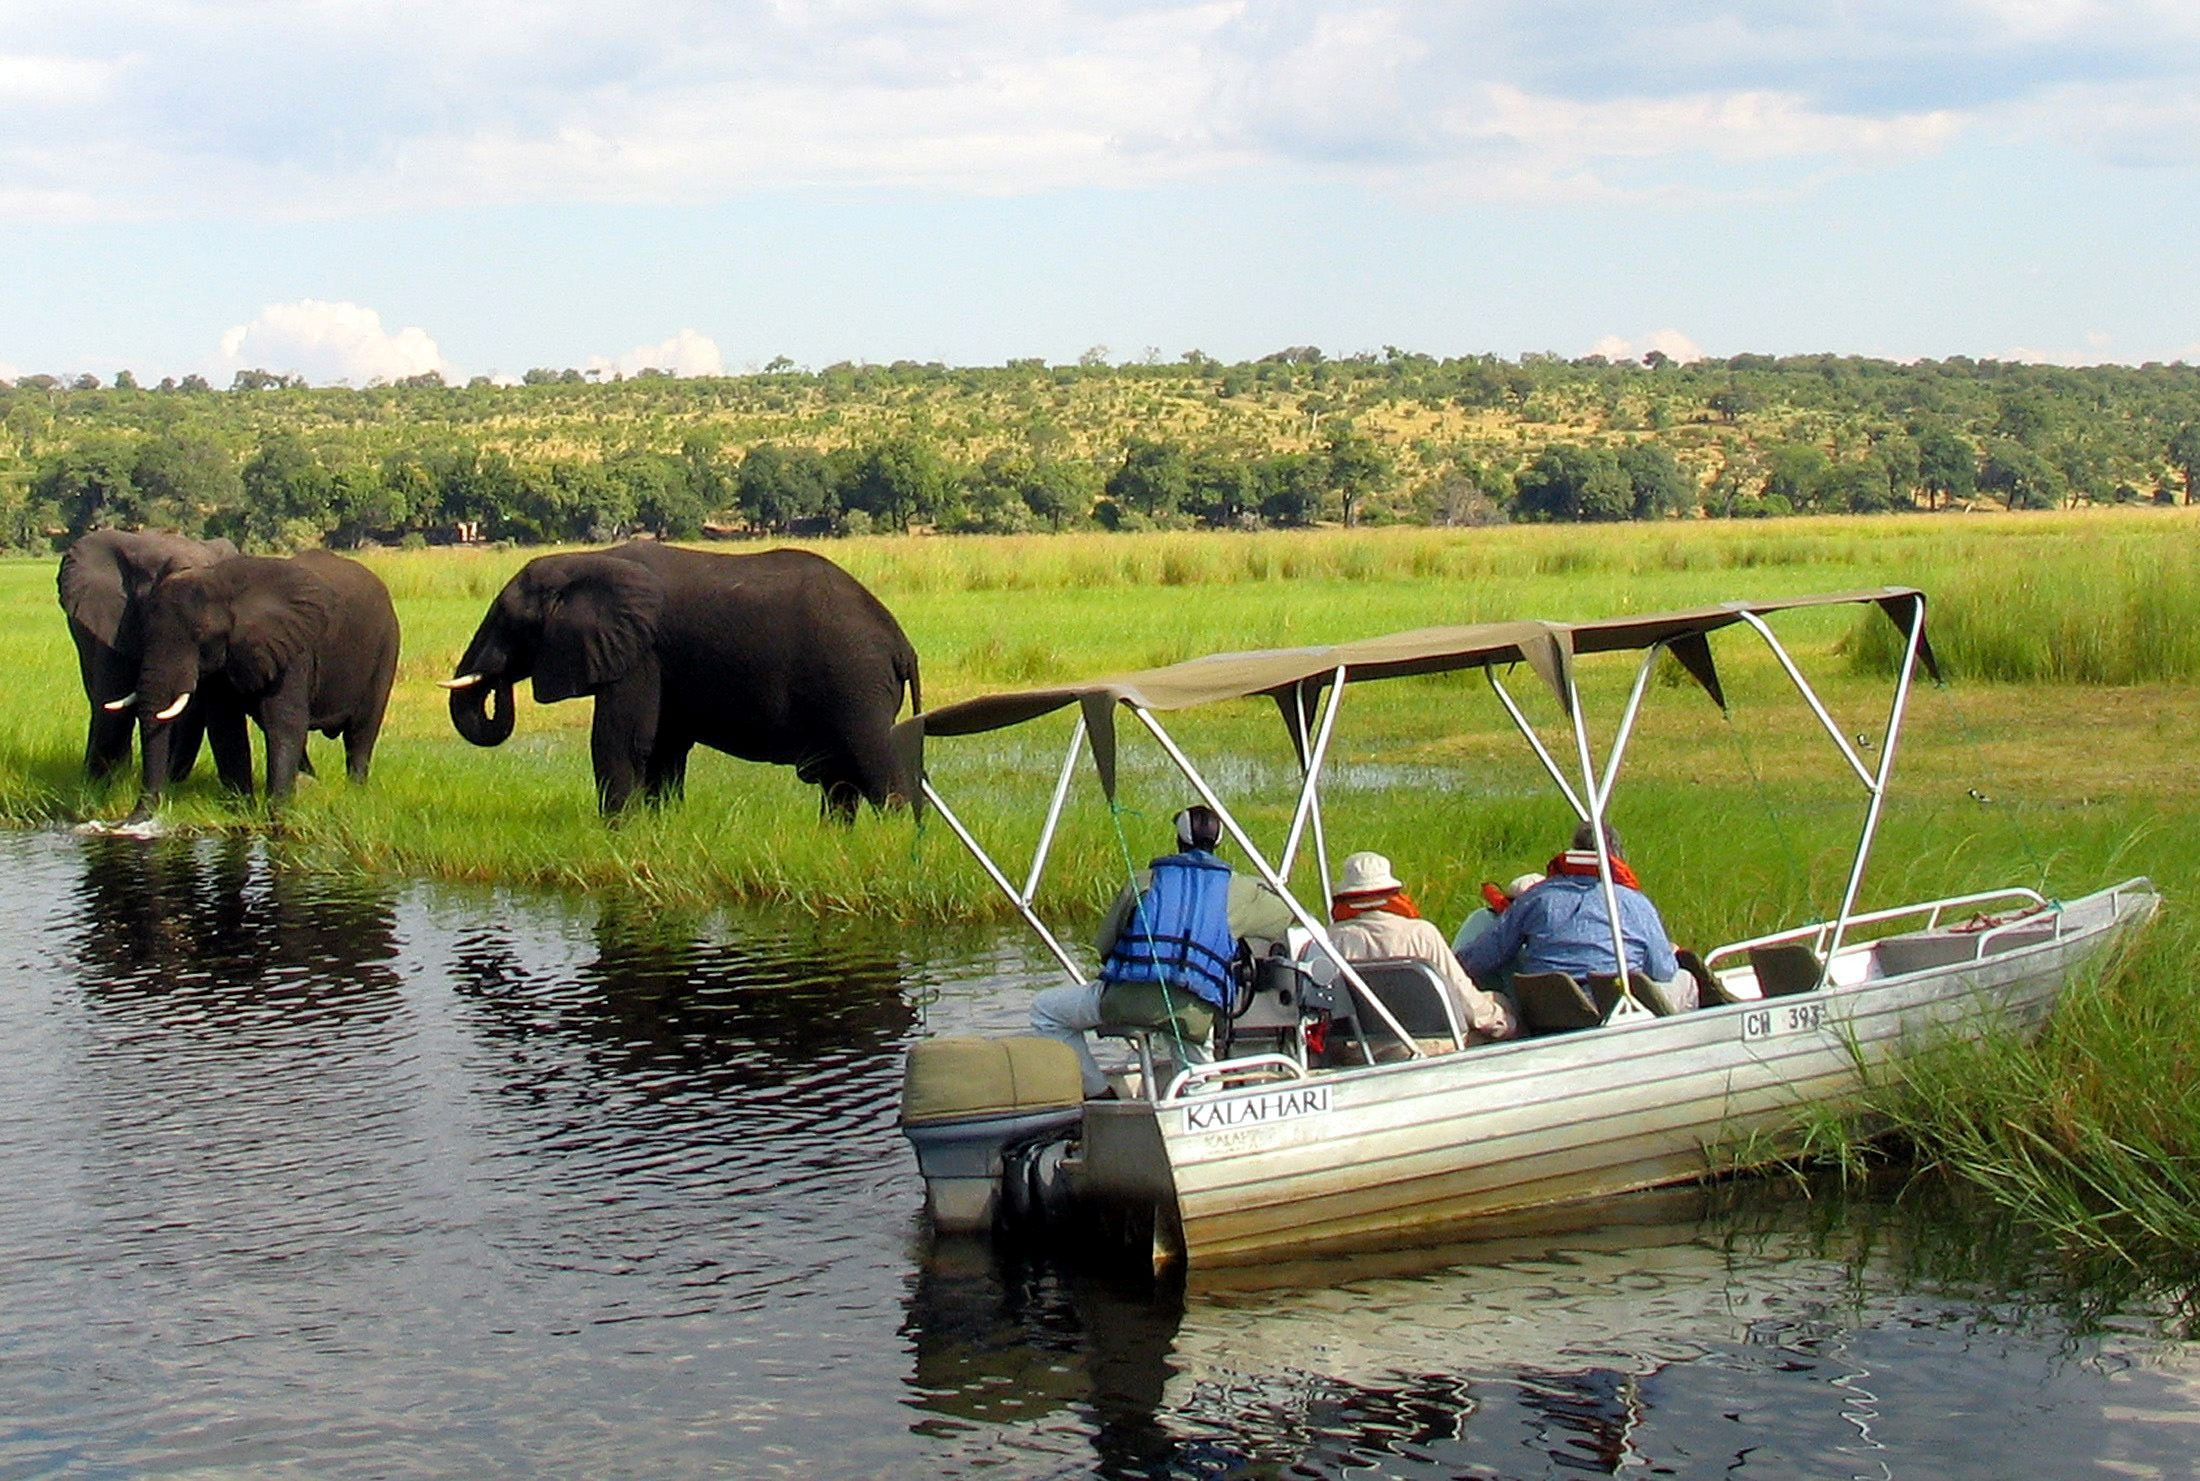 Foreign tourists in safari riverboats observe elephants along the Chobe river bank near Botswana's northern border where Zimbabwe, Zambia and Namibia meet